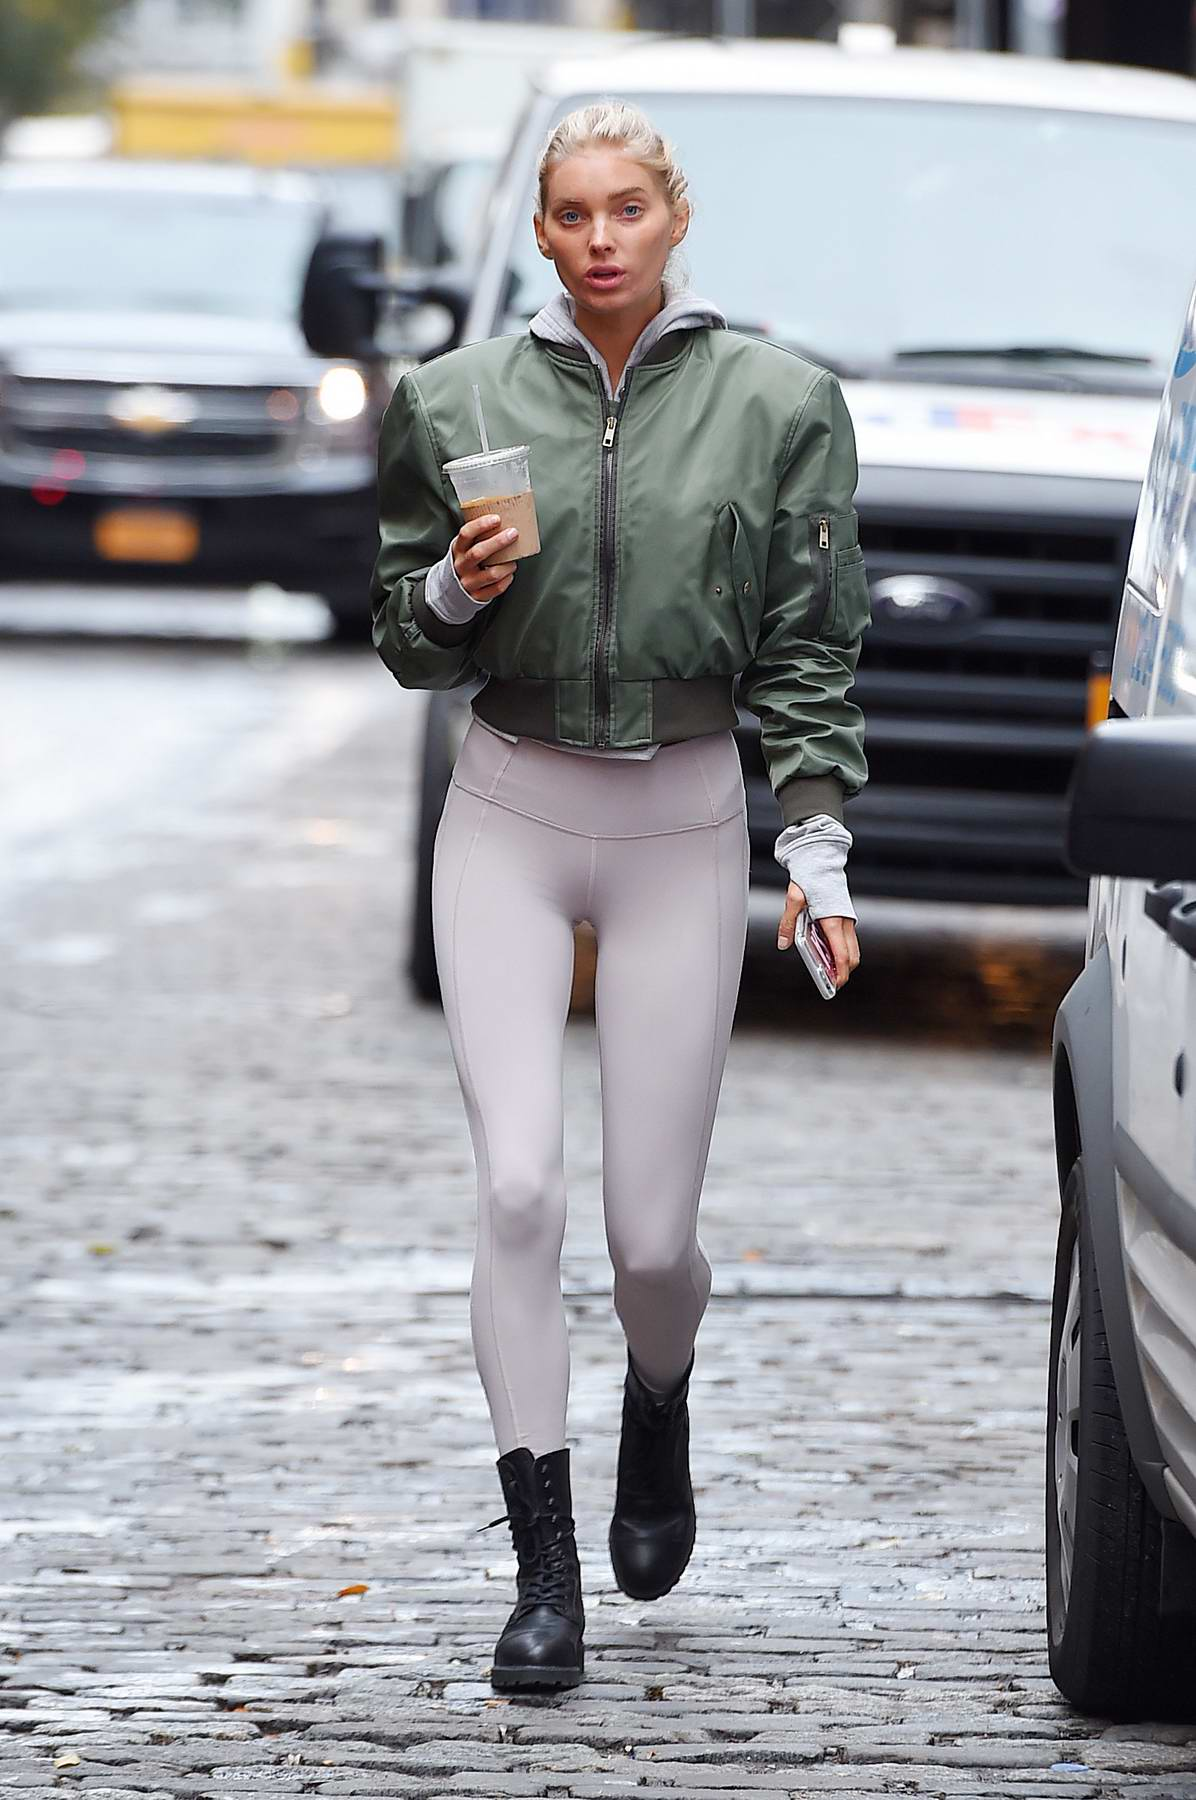 Elsa Hosk in a green jacket and white leggings out and about in SoHo, New York City